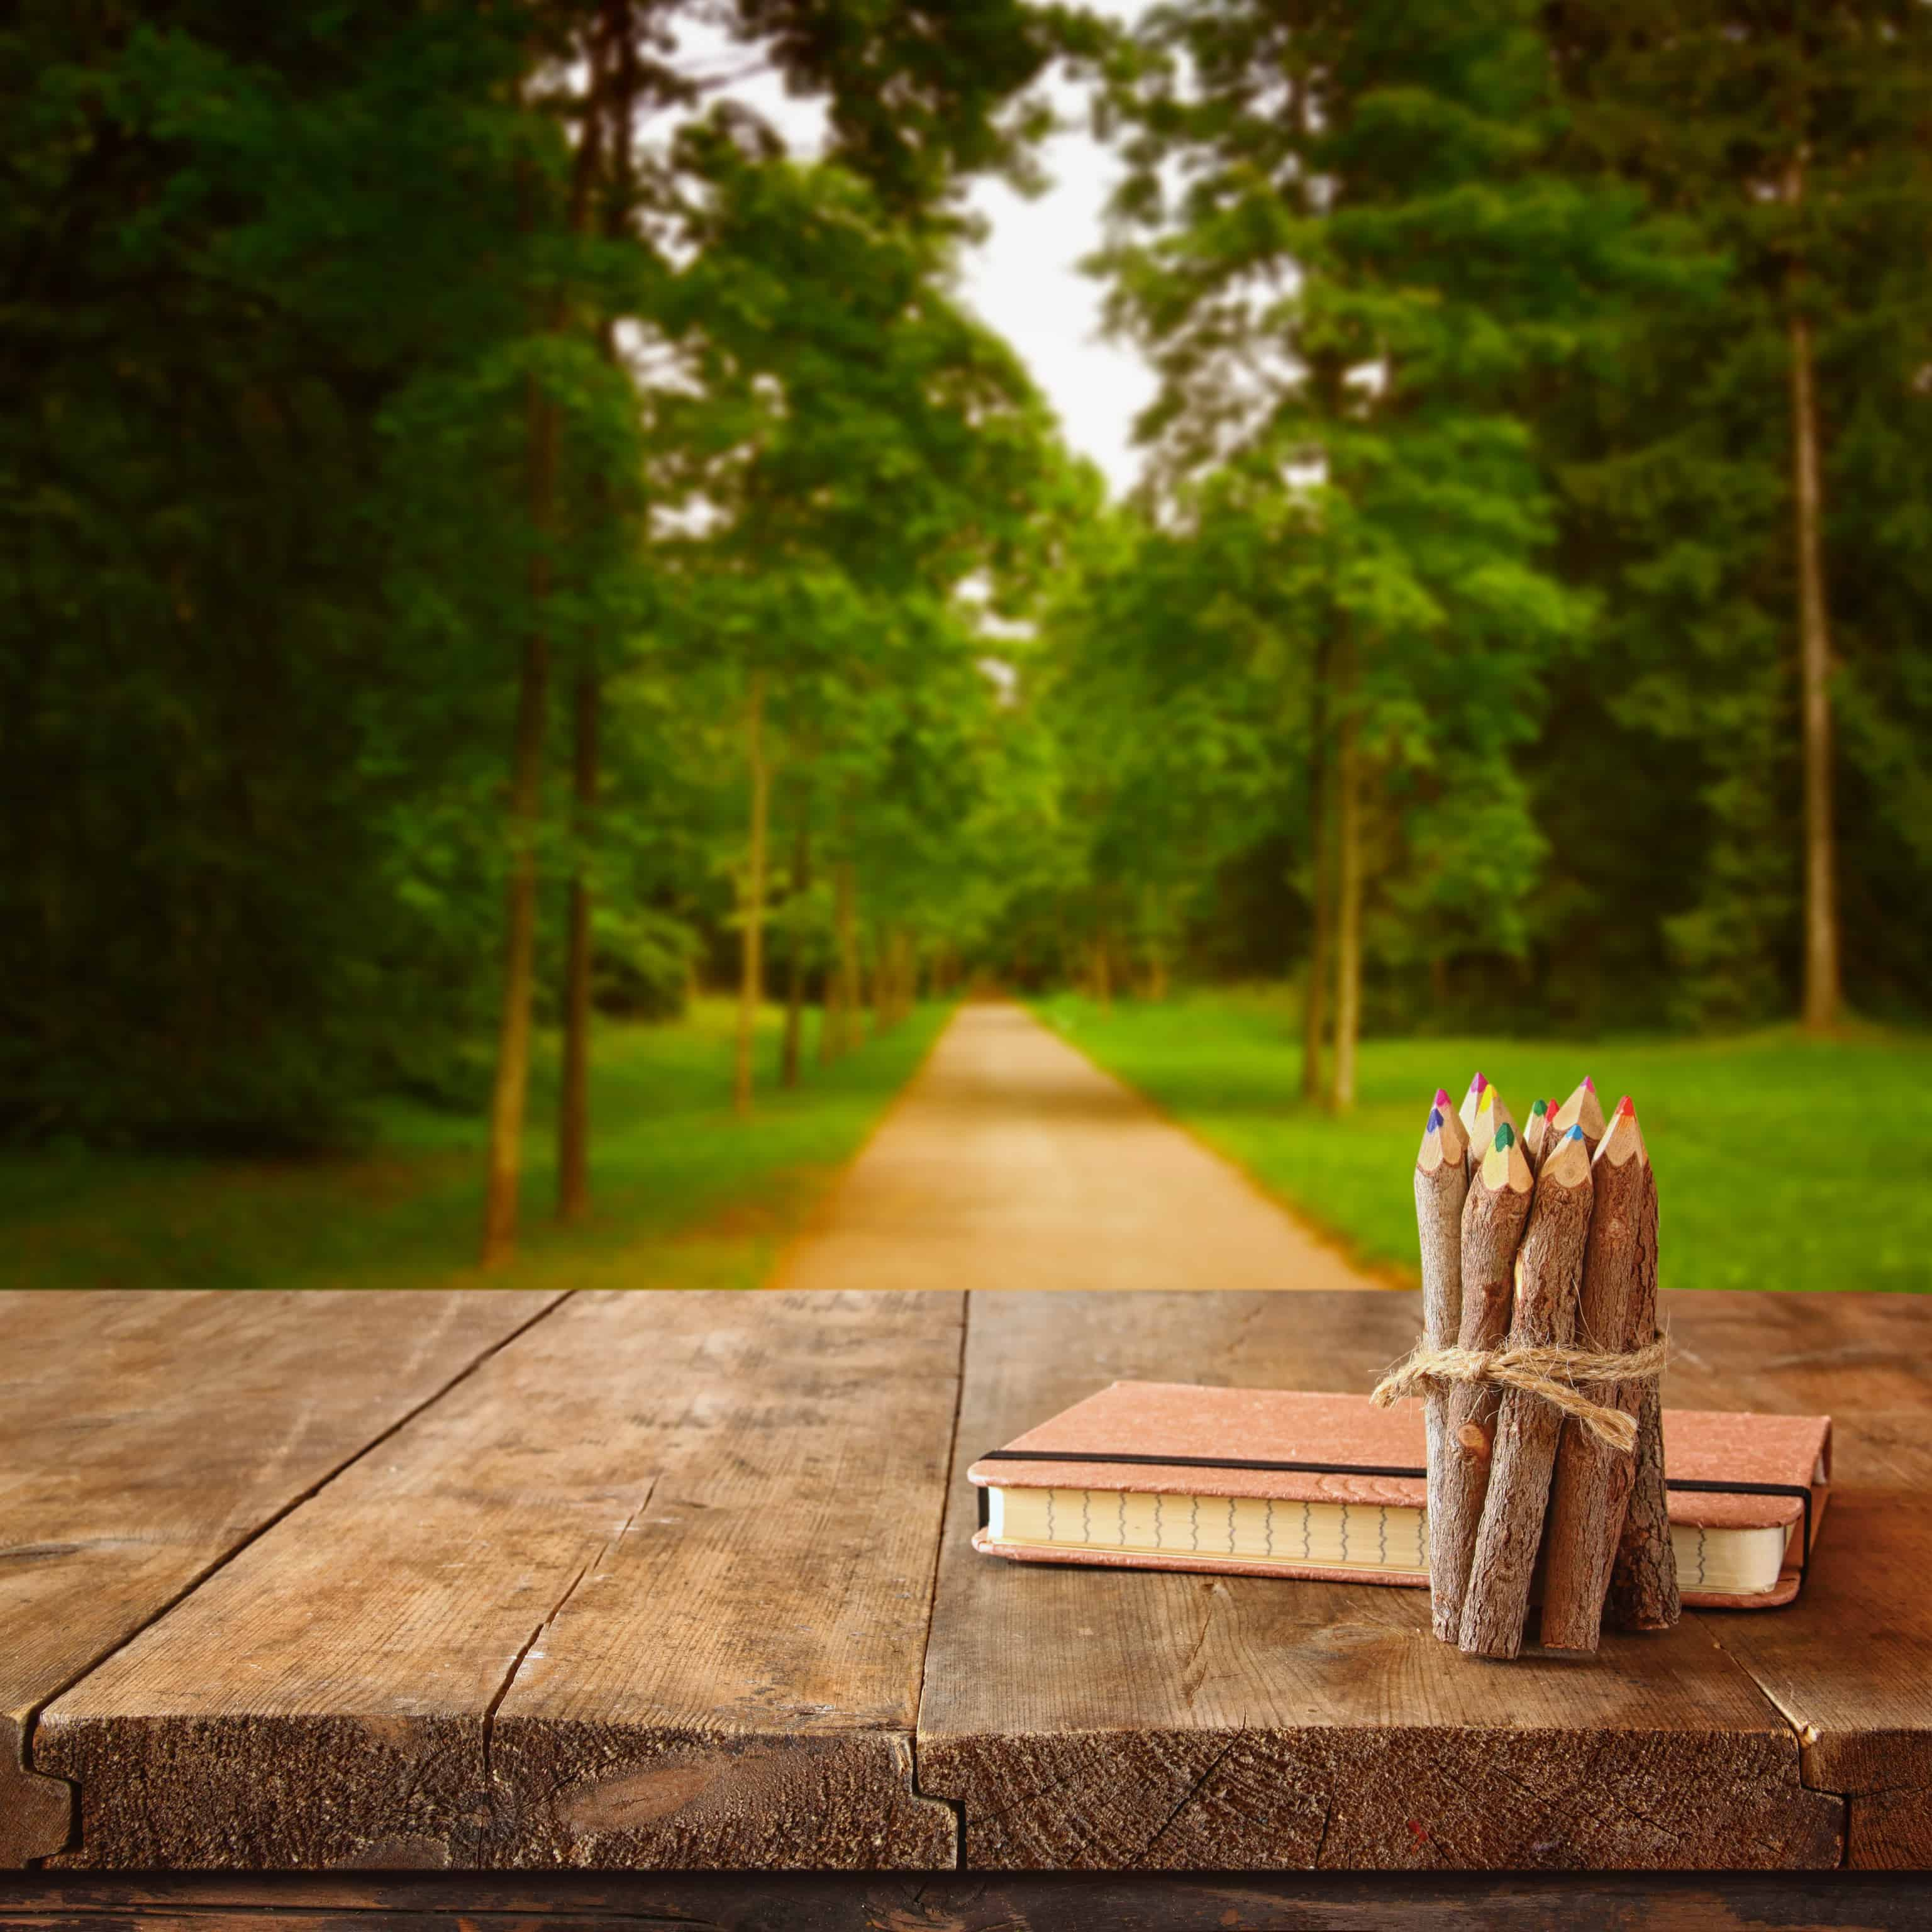 pencils and journal on wooded desk in forest